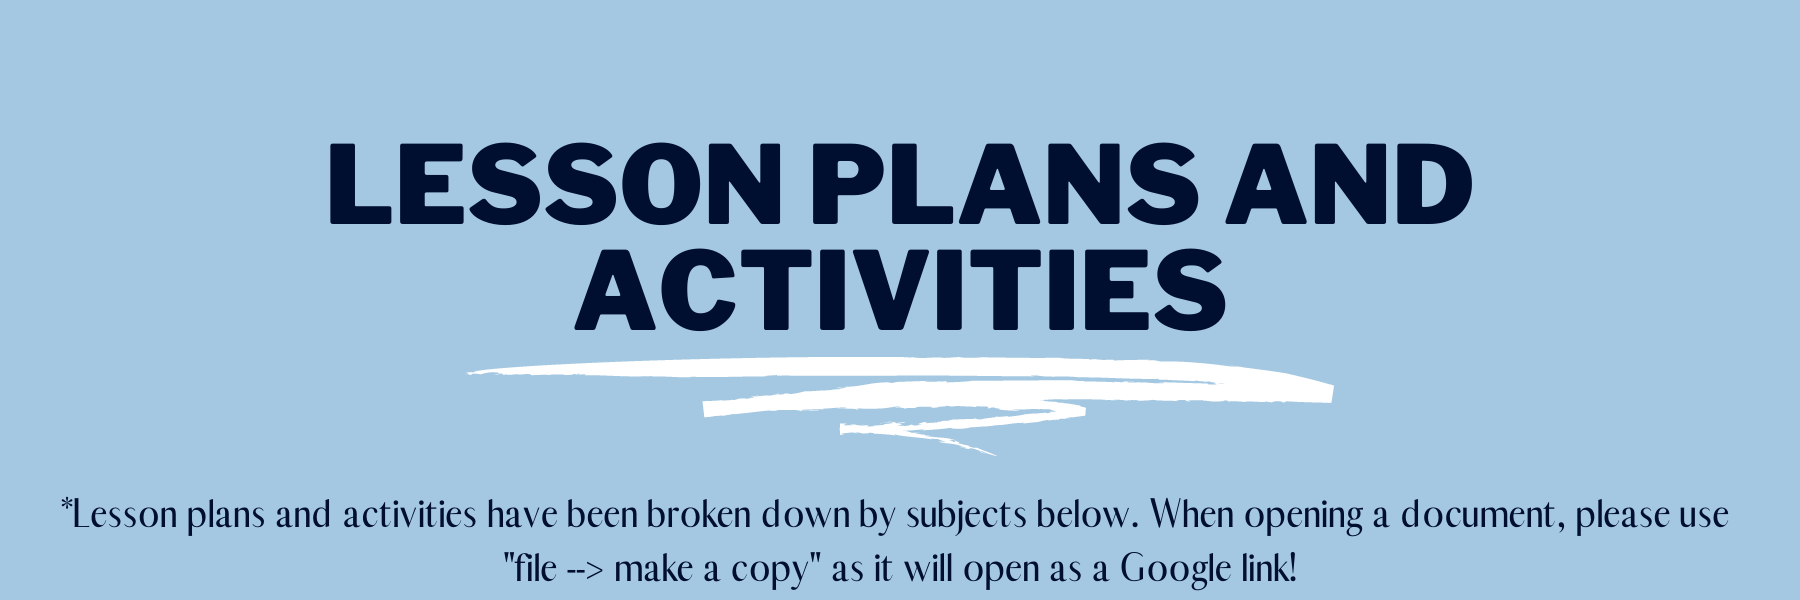 Lesson Plans and Activities